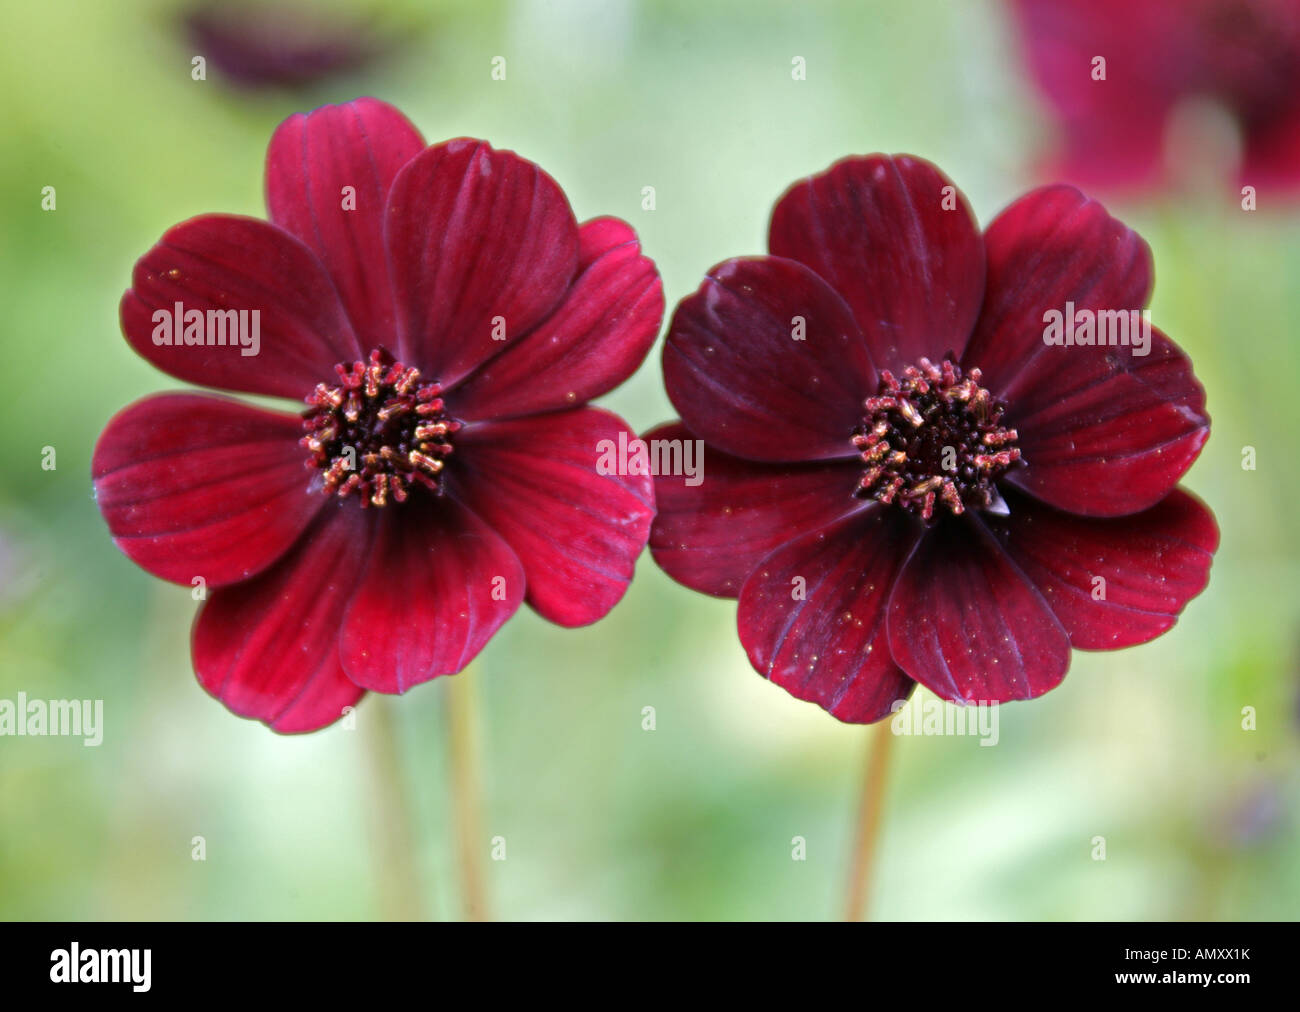 Chocolate Cosmos Stock Photos & Chocolate Cosmos Stock Images - Alamy